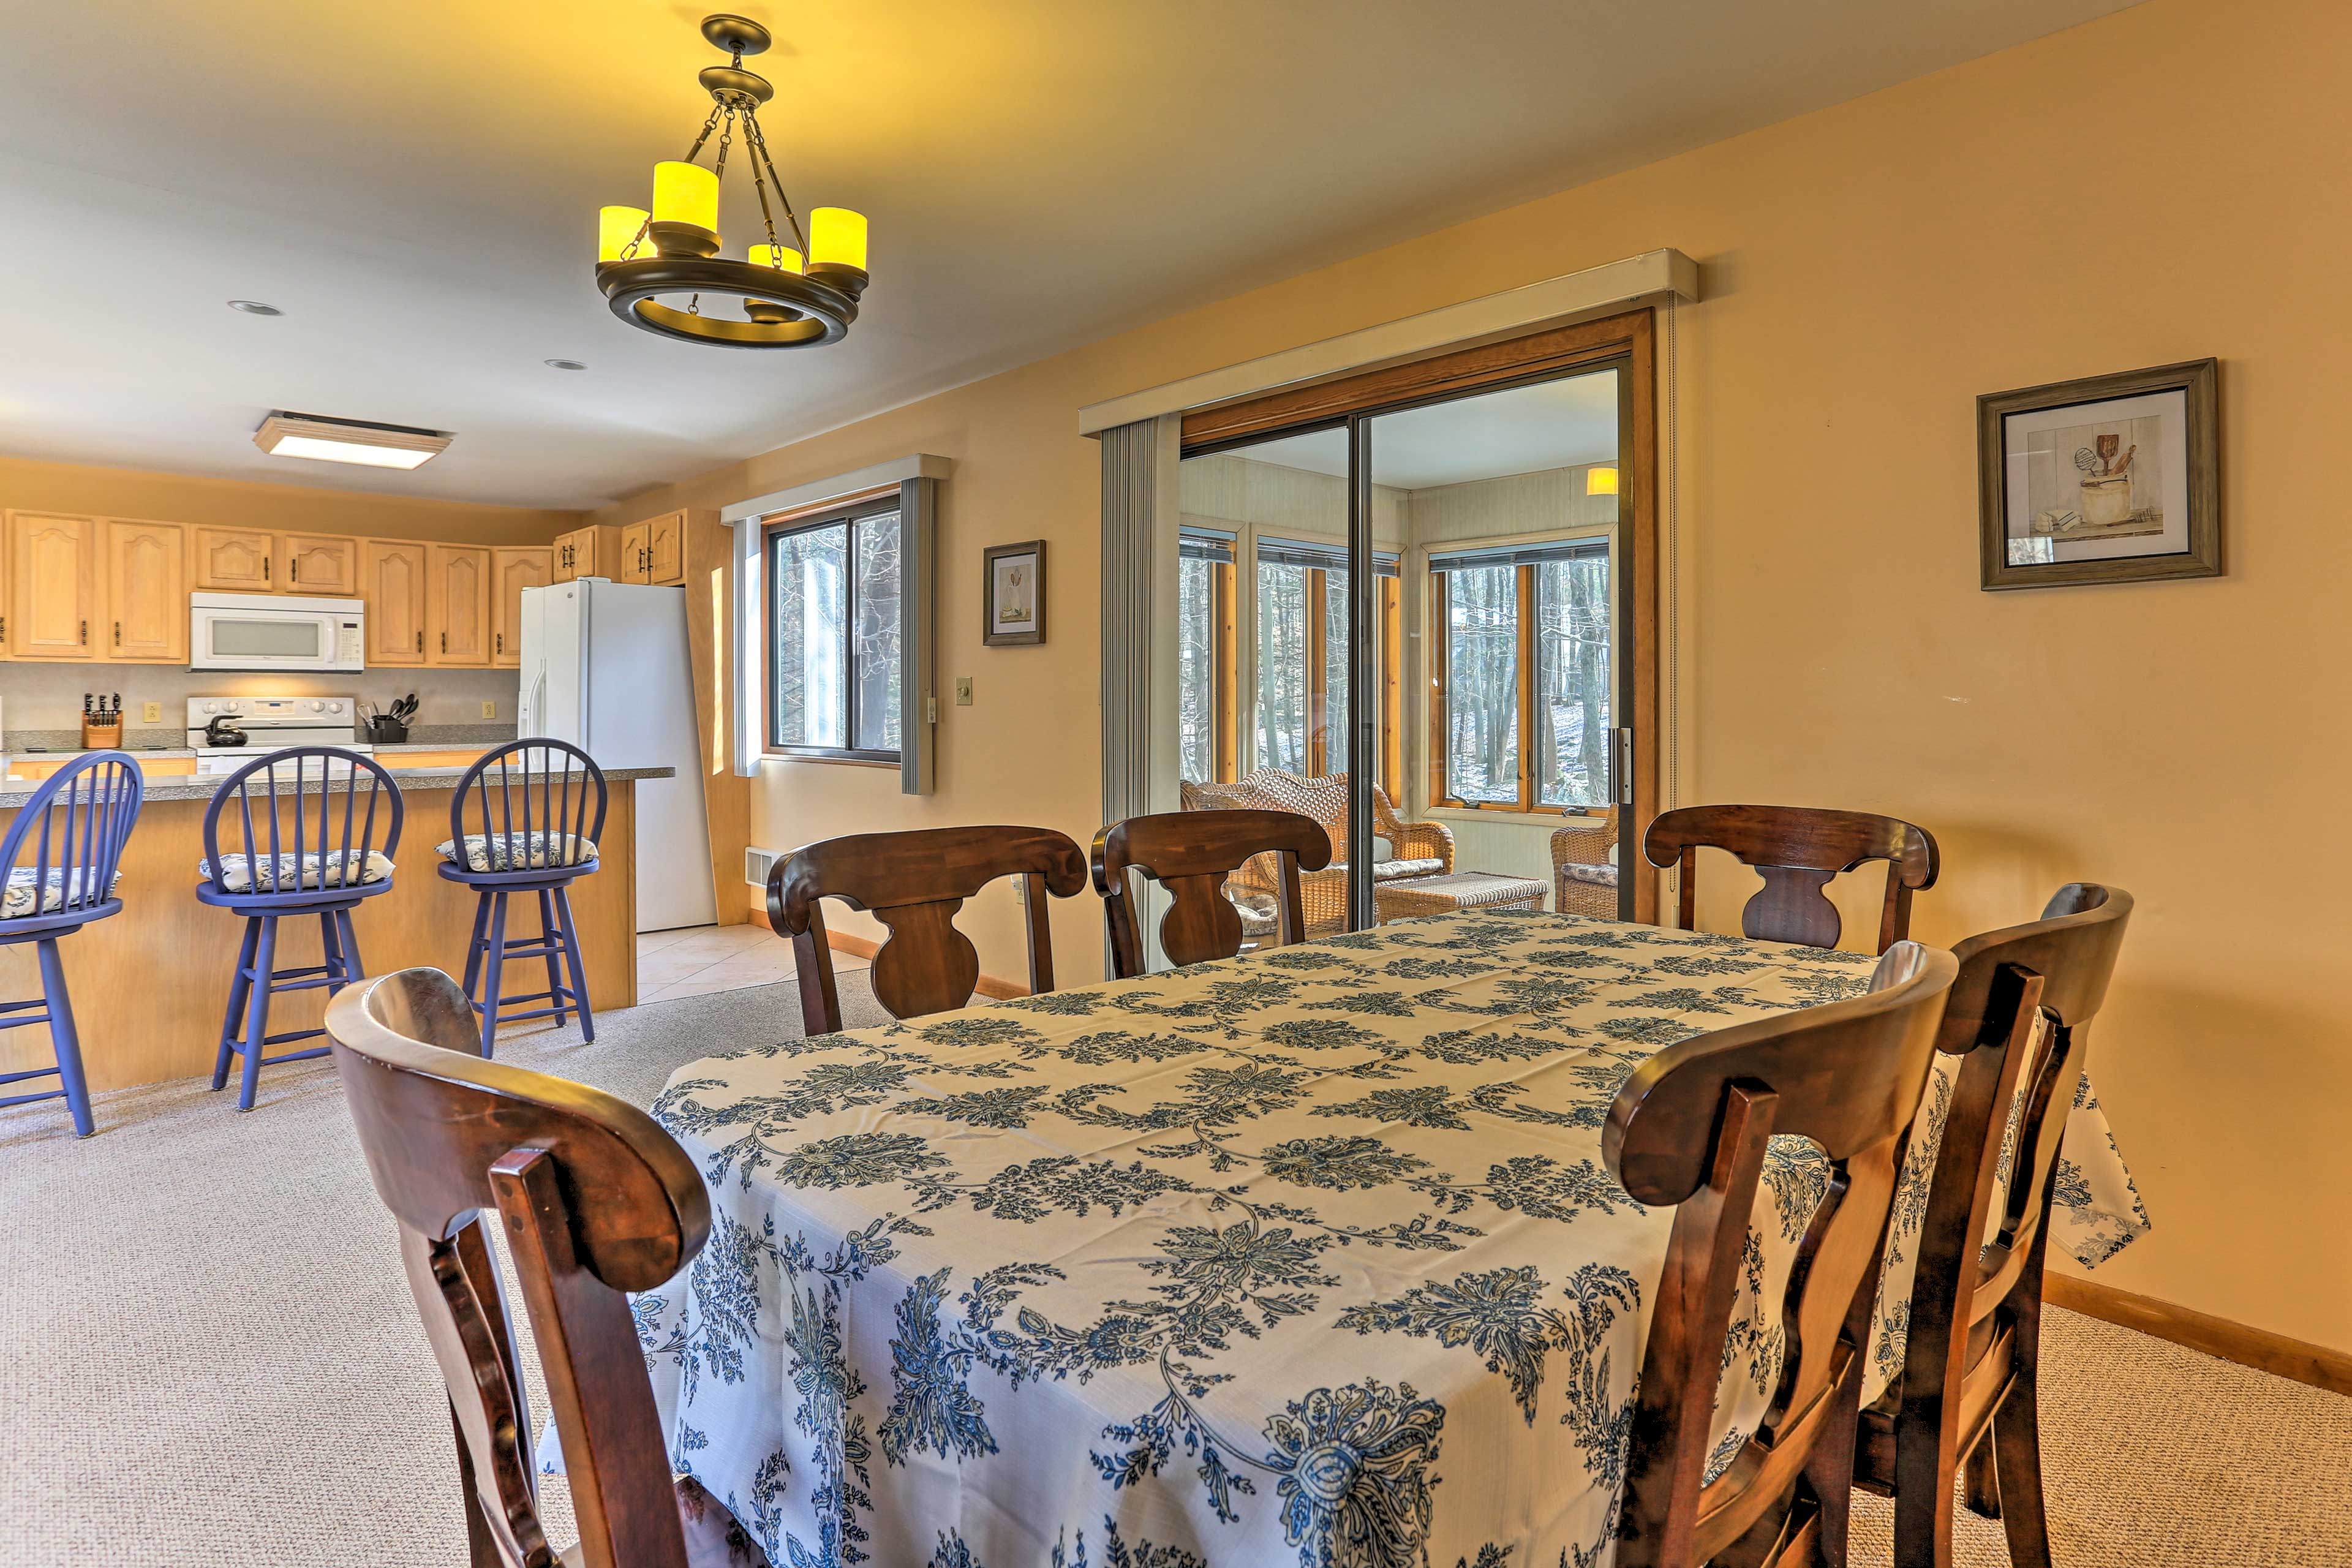 Share a family feast around the dining table.